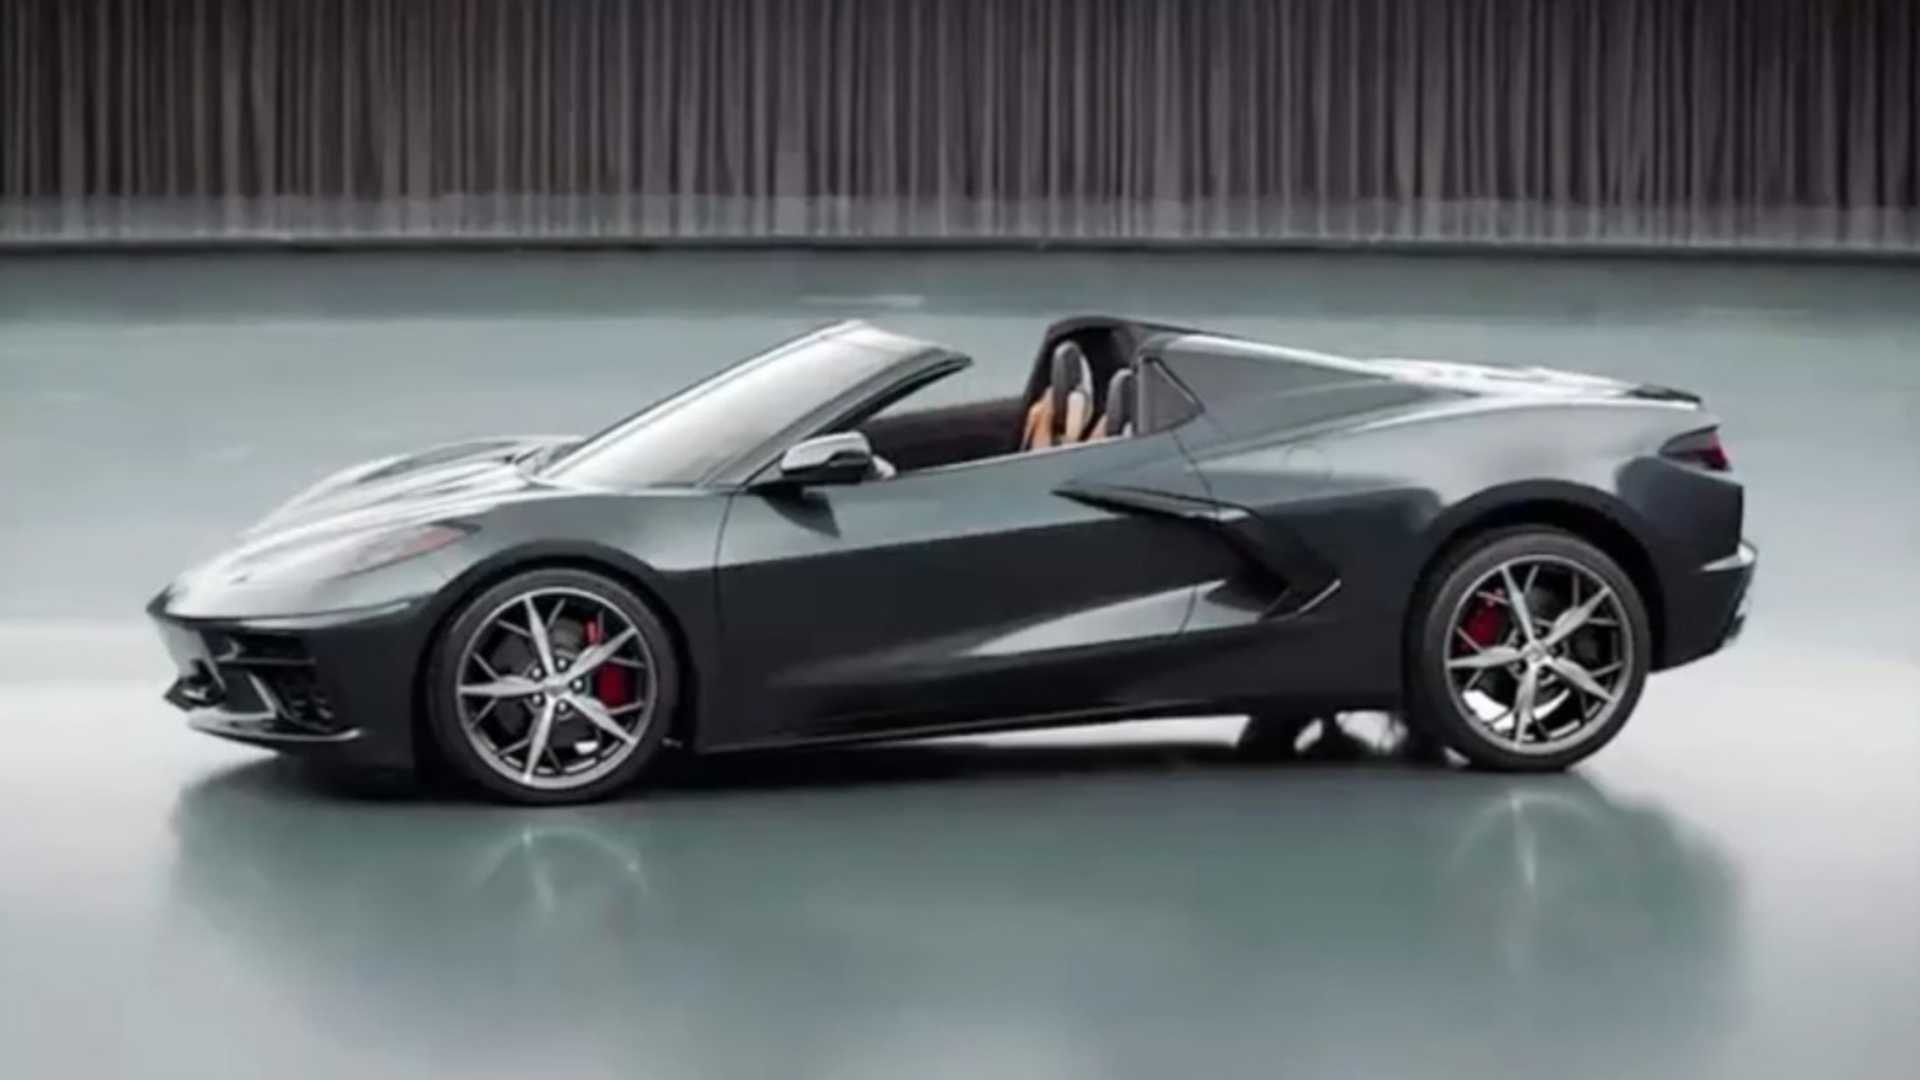 2020 Chevrolet Corvette C8 convertible